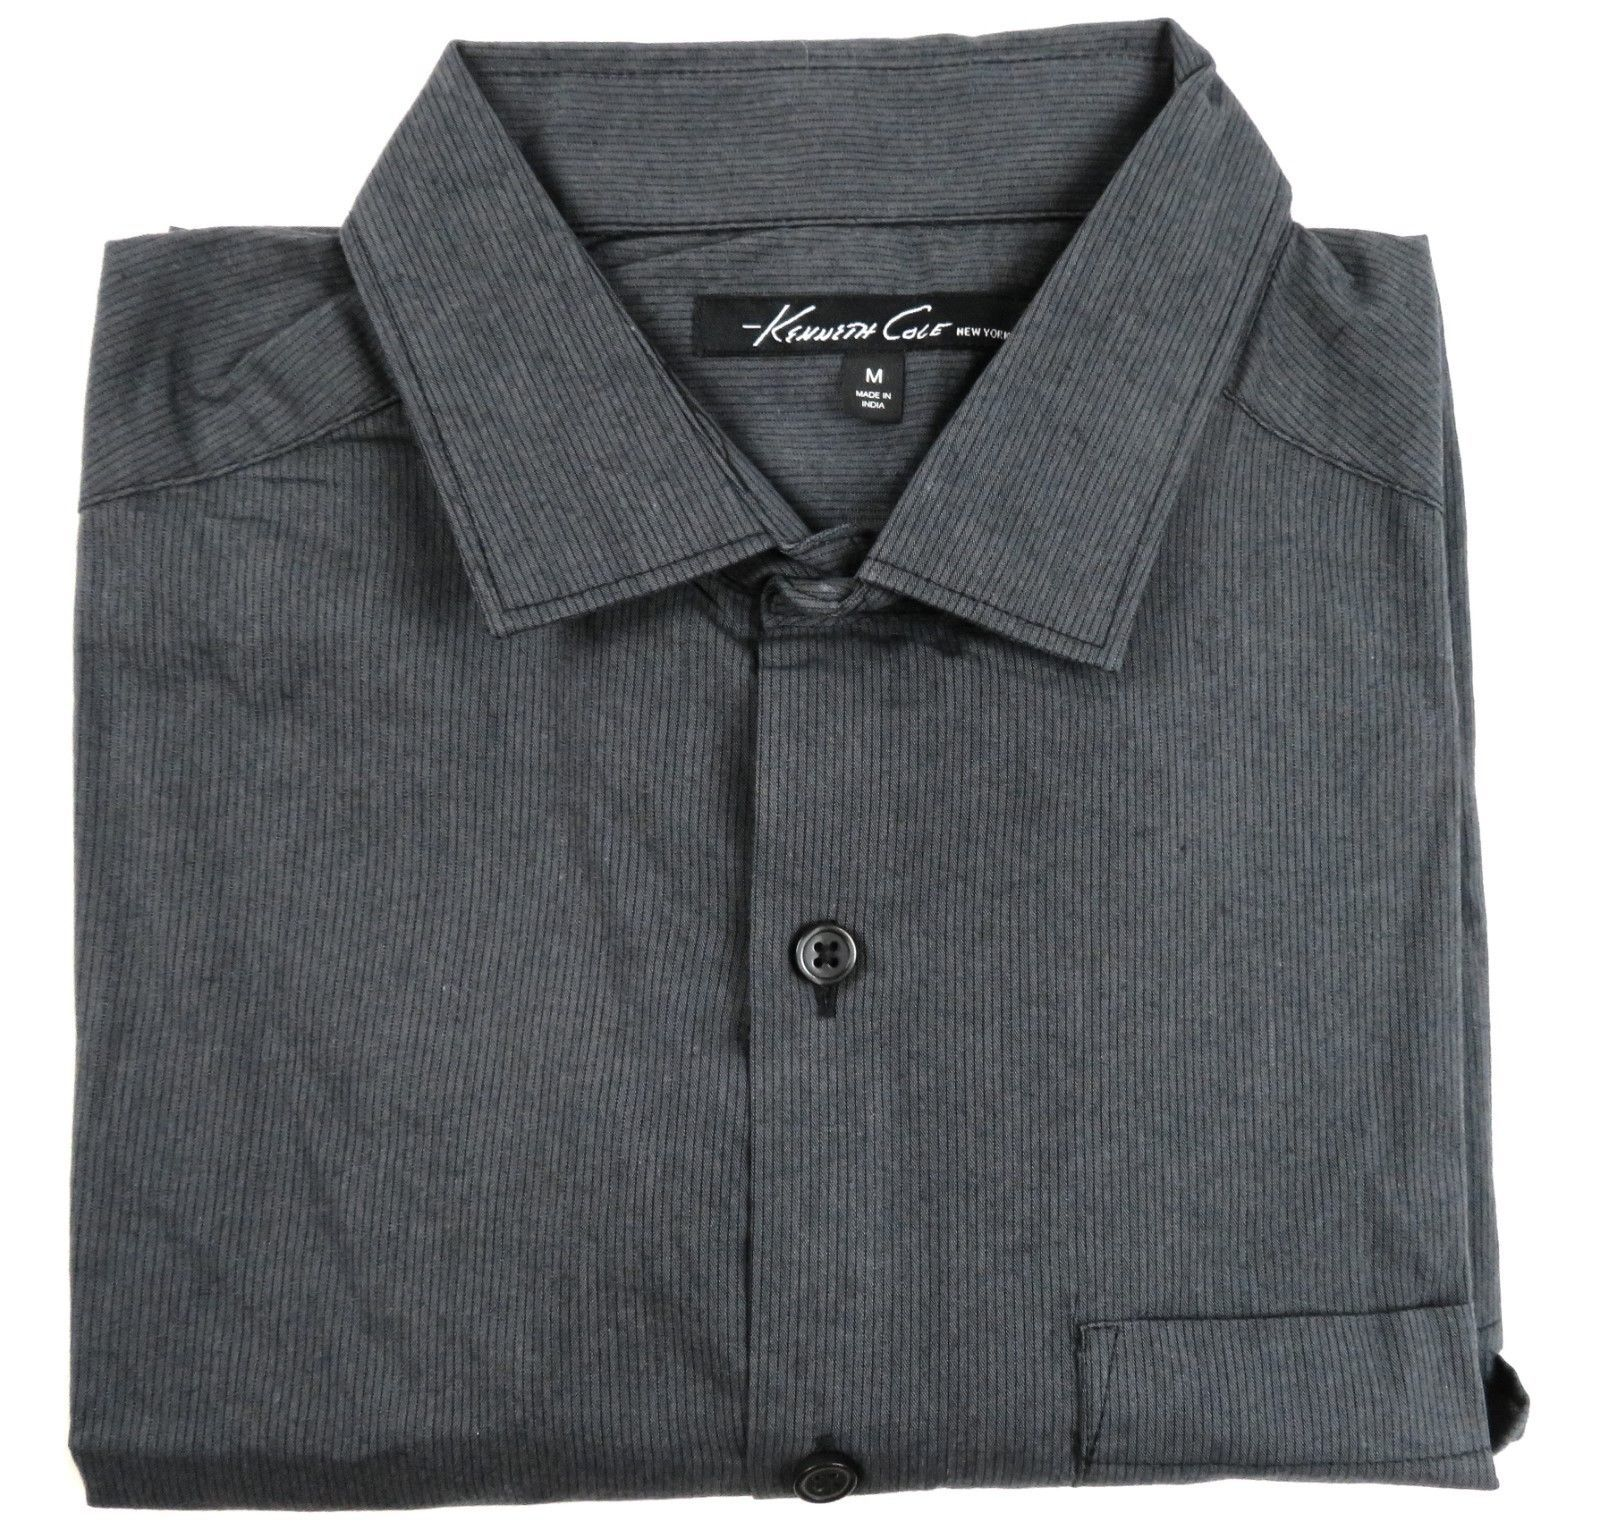 Kenneth Cole New York Shirt Men's Long Sleeve Button-down #29